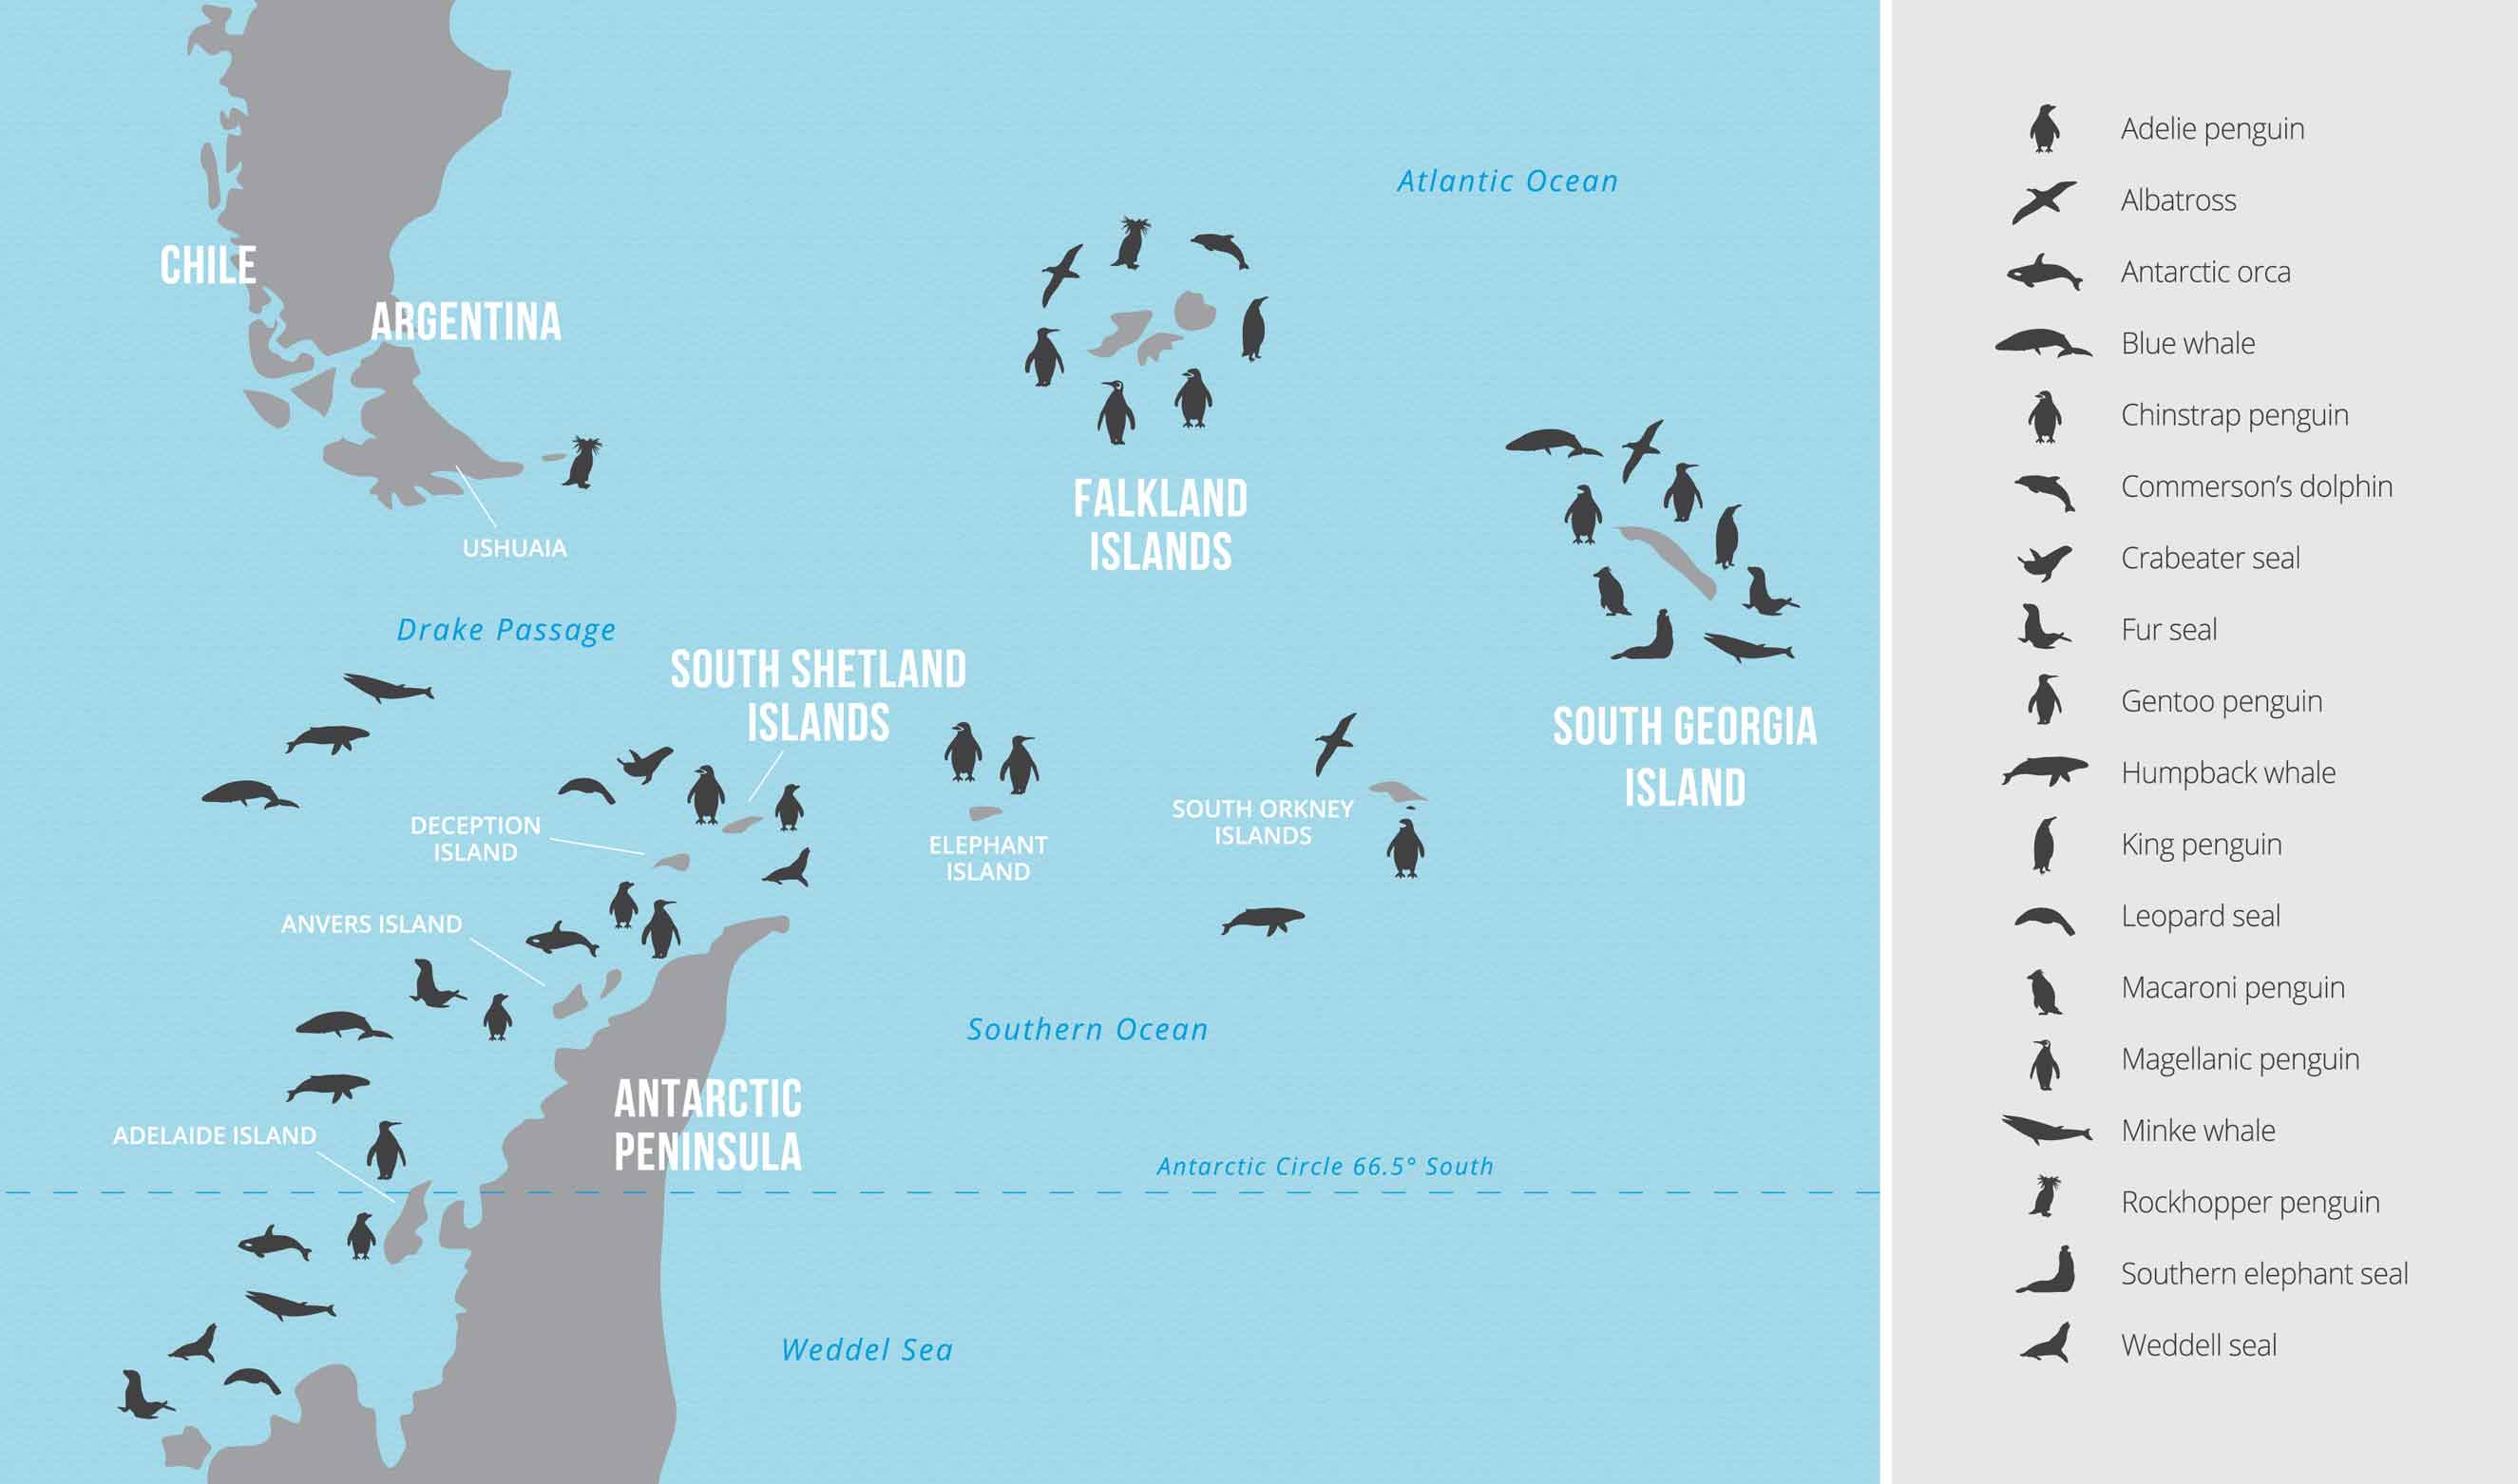 Map of whales penguins and seals found in the Antarctic